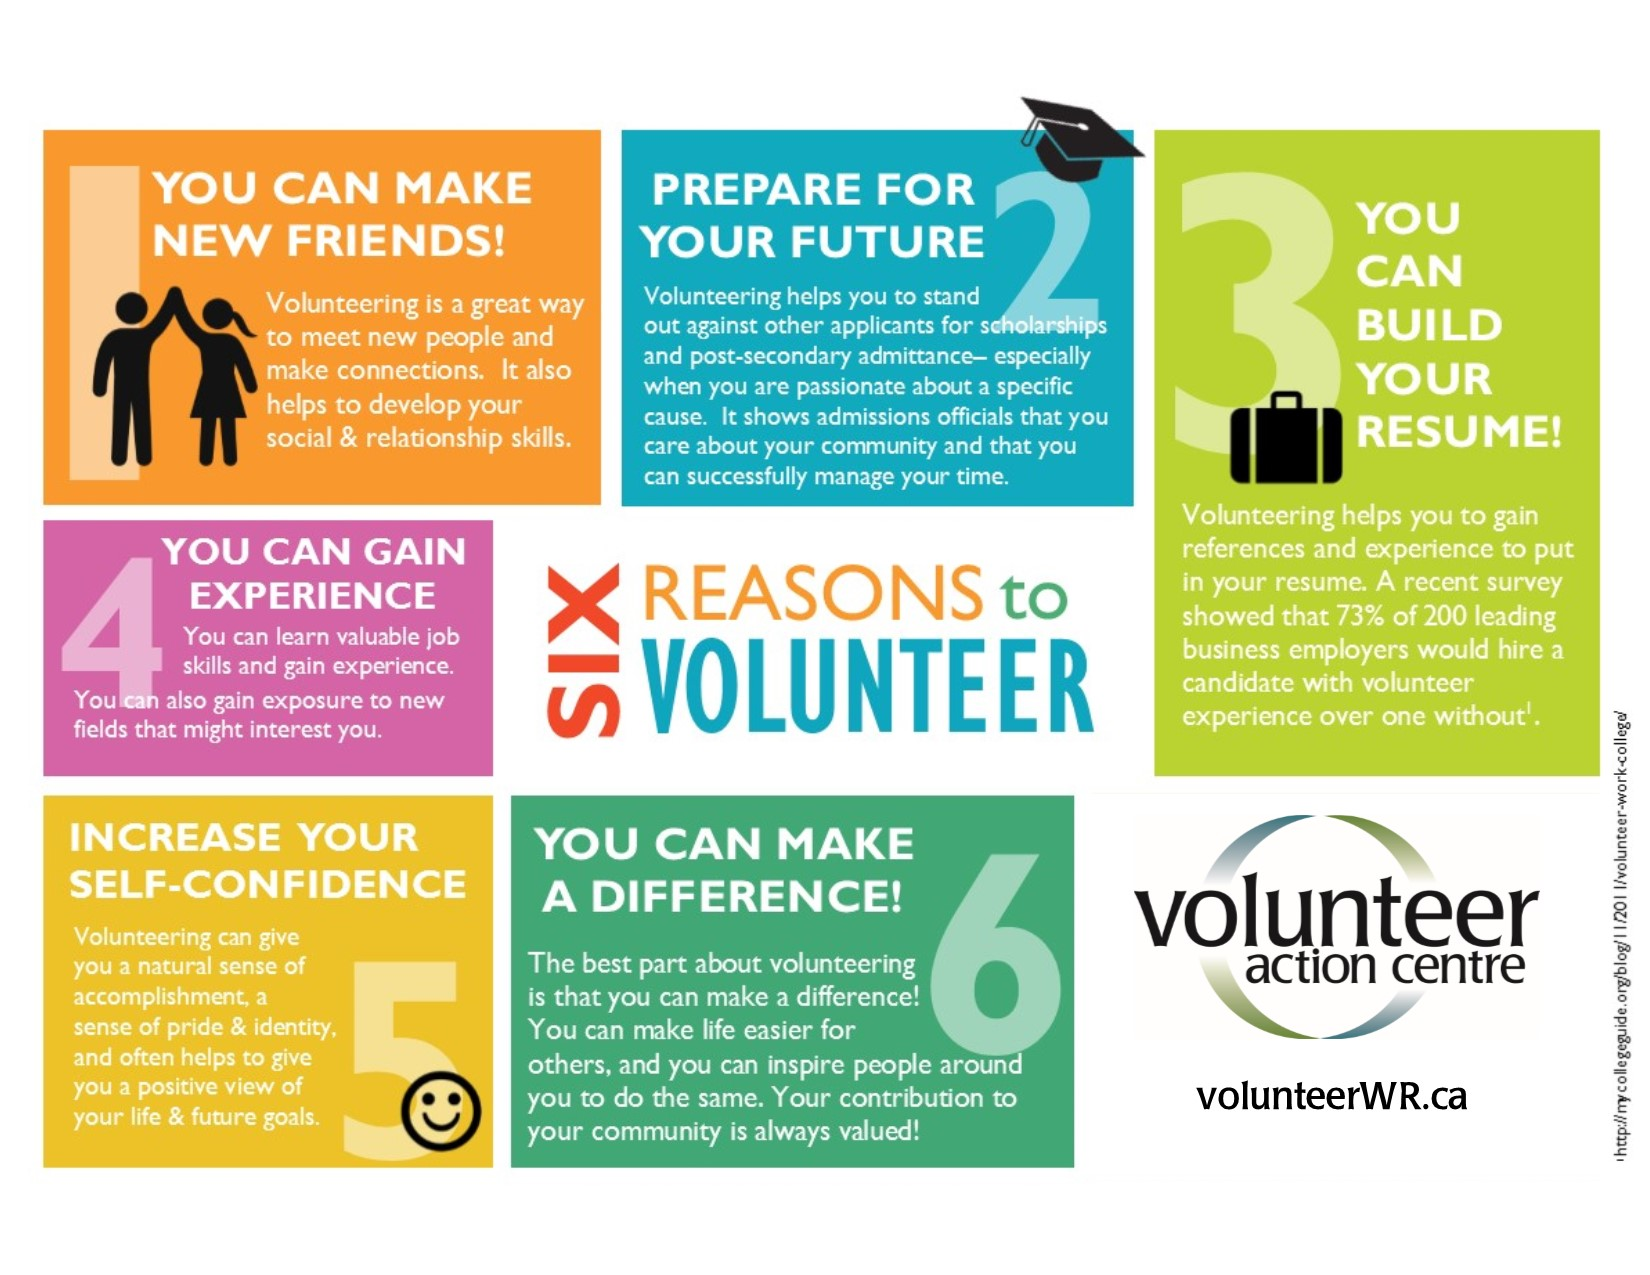 6 reasons to volunteer